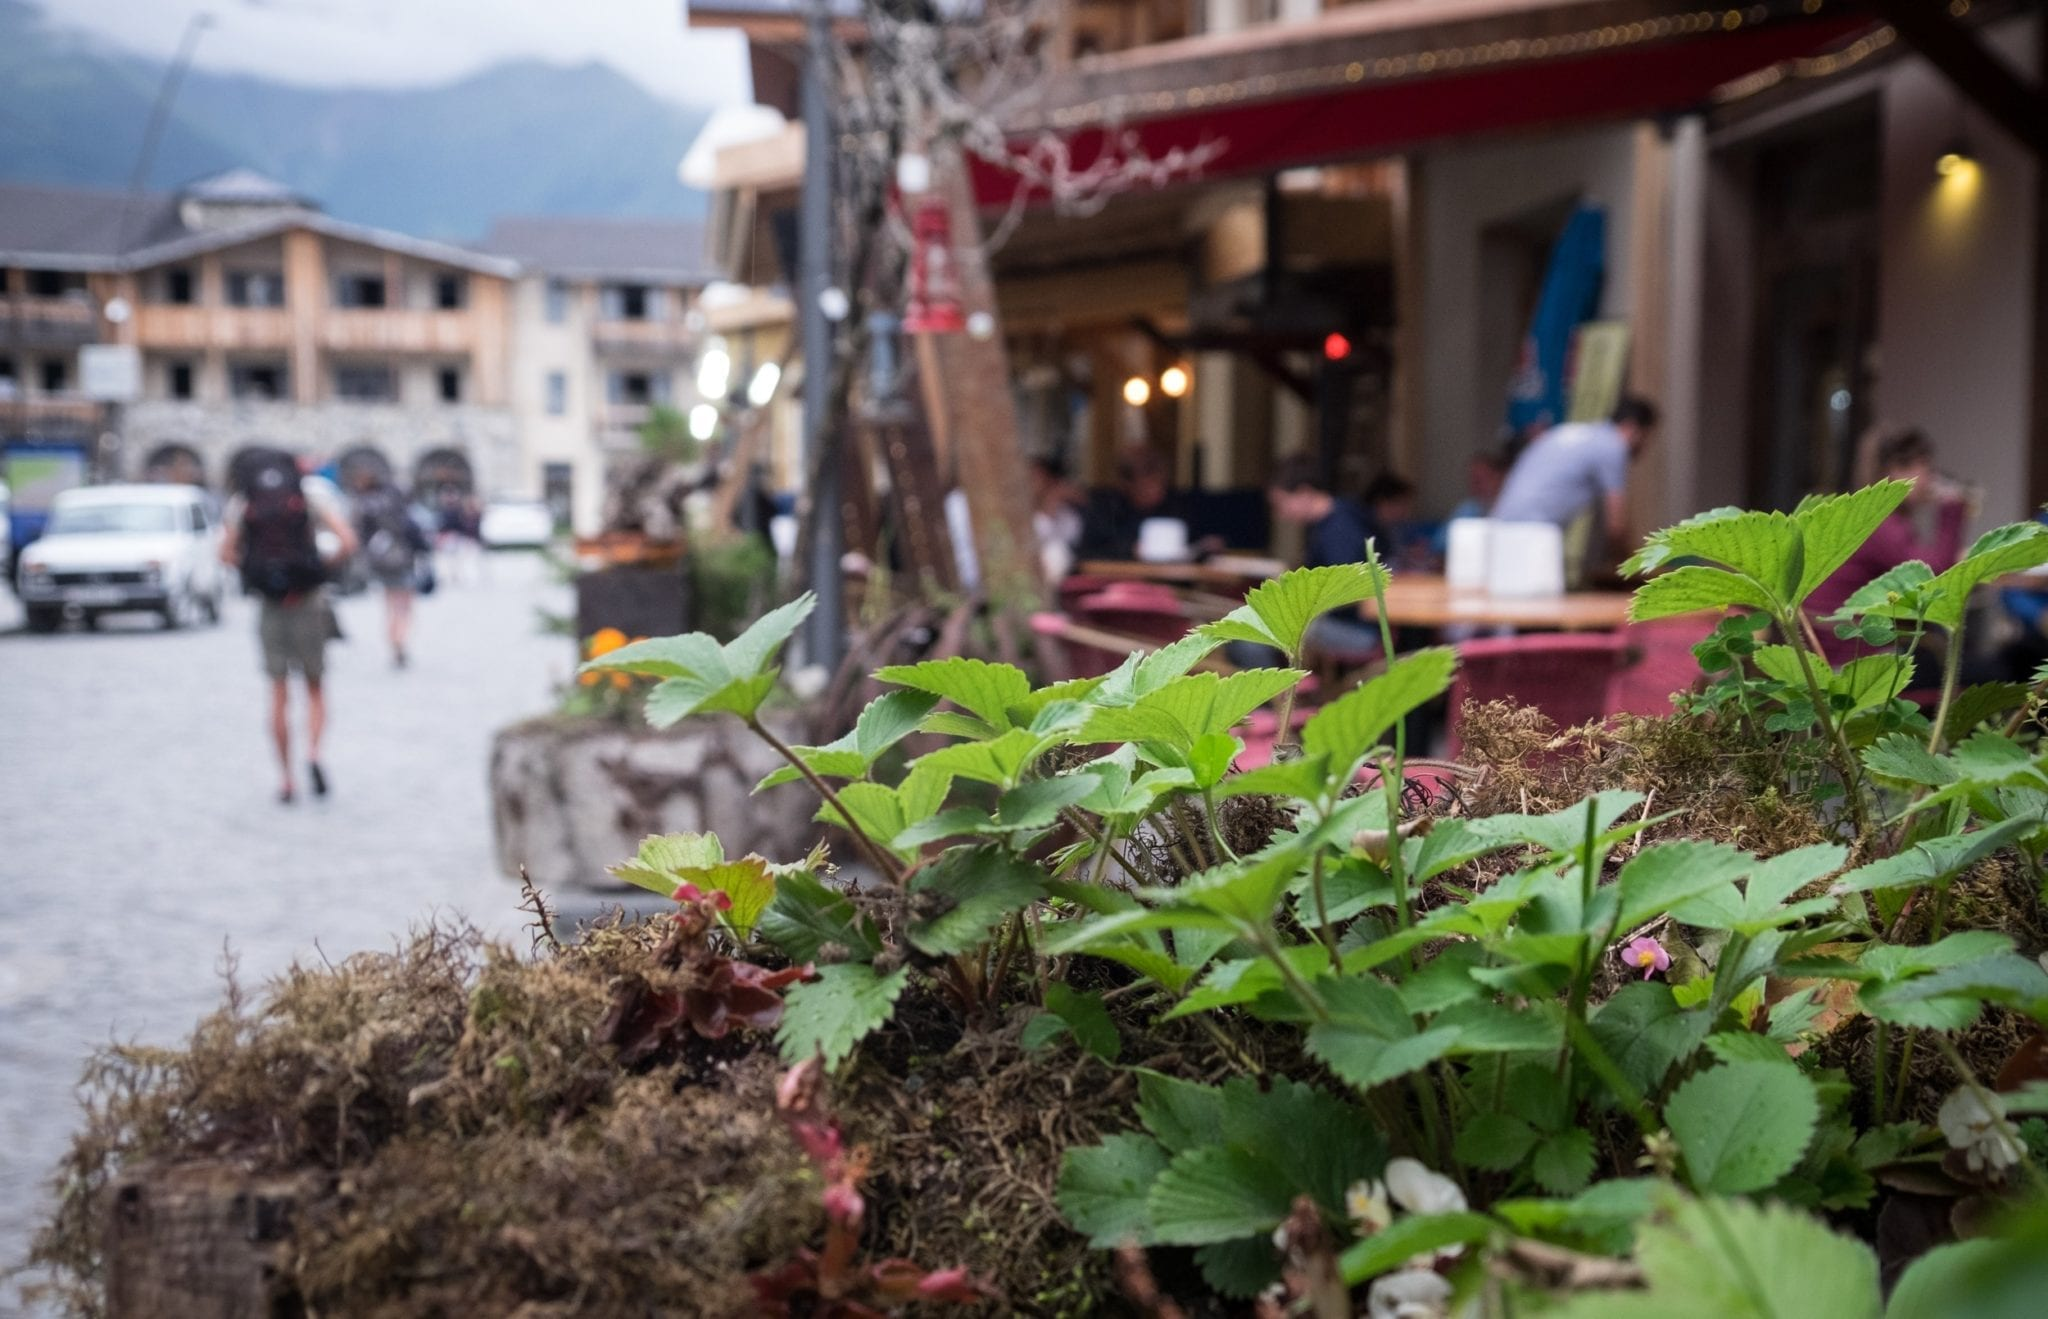 A close up on green plants in a pot; in the background is a cafe and a blurry man with a backpack walking down the street.